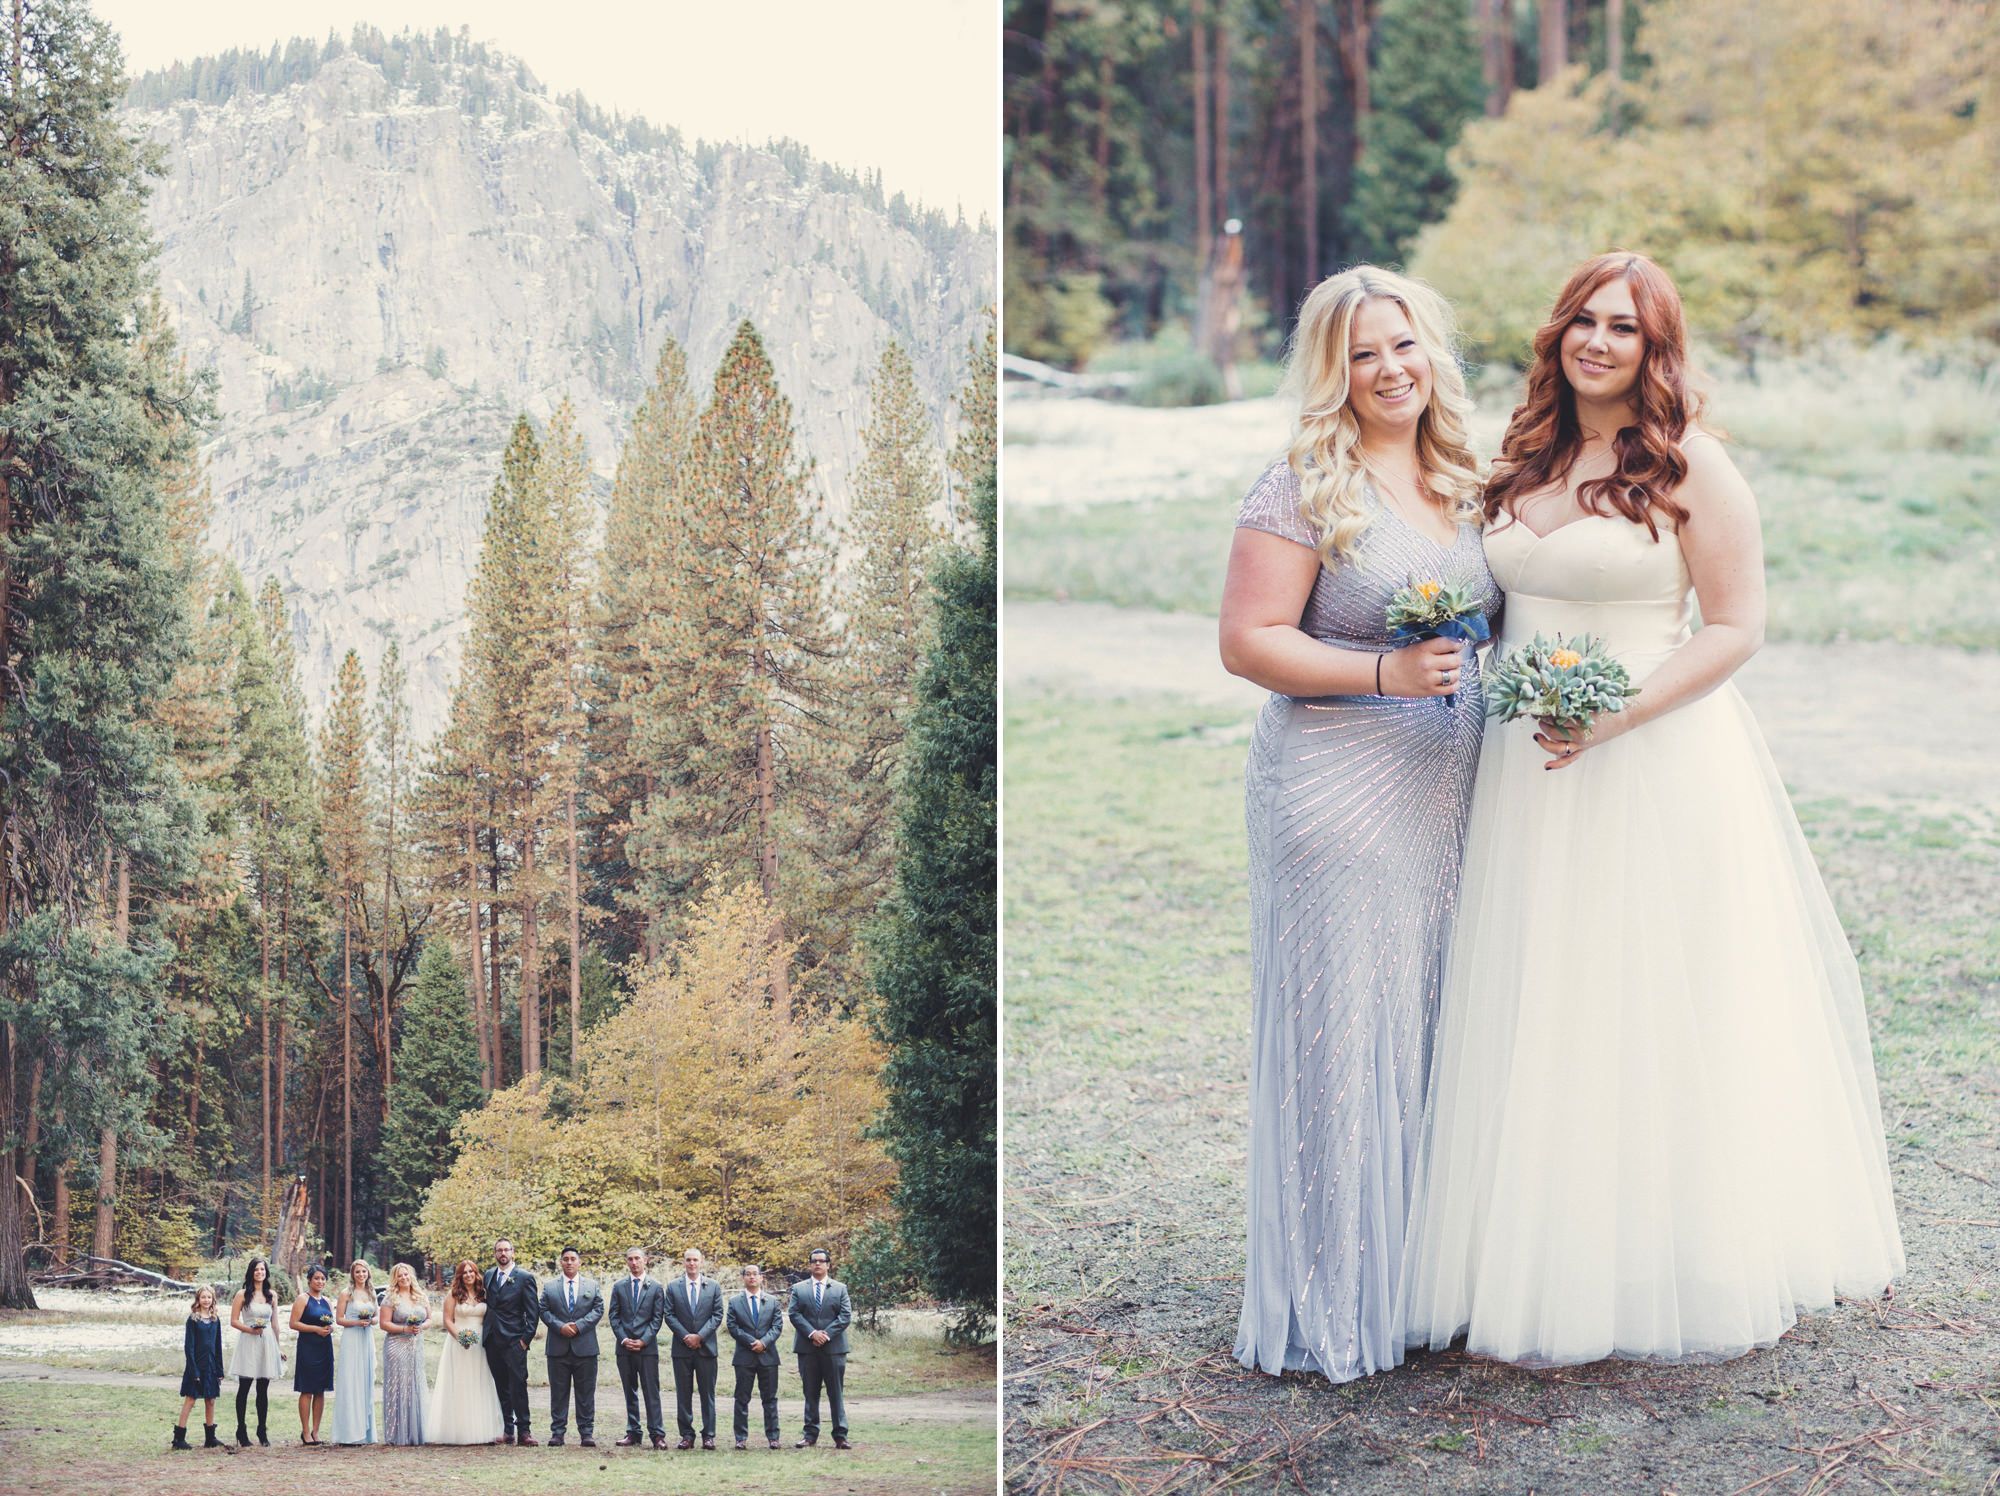 Yosemite wedding ©Anne-Claire Brun 71